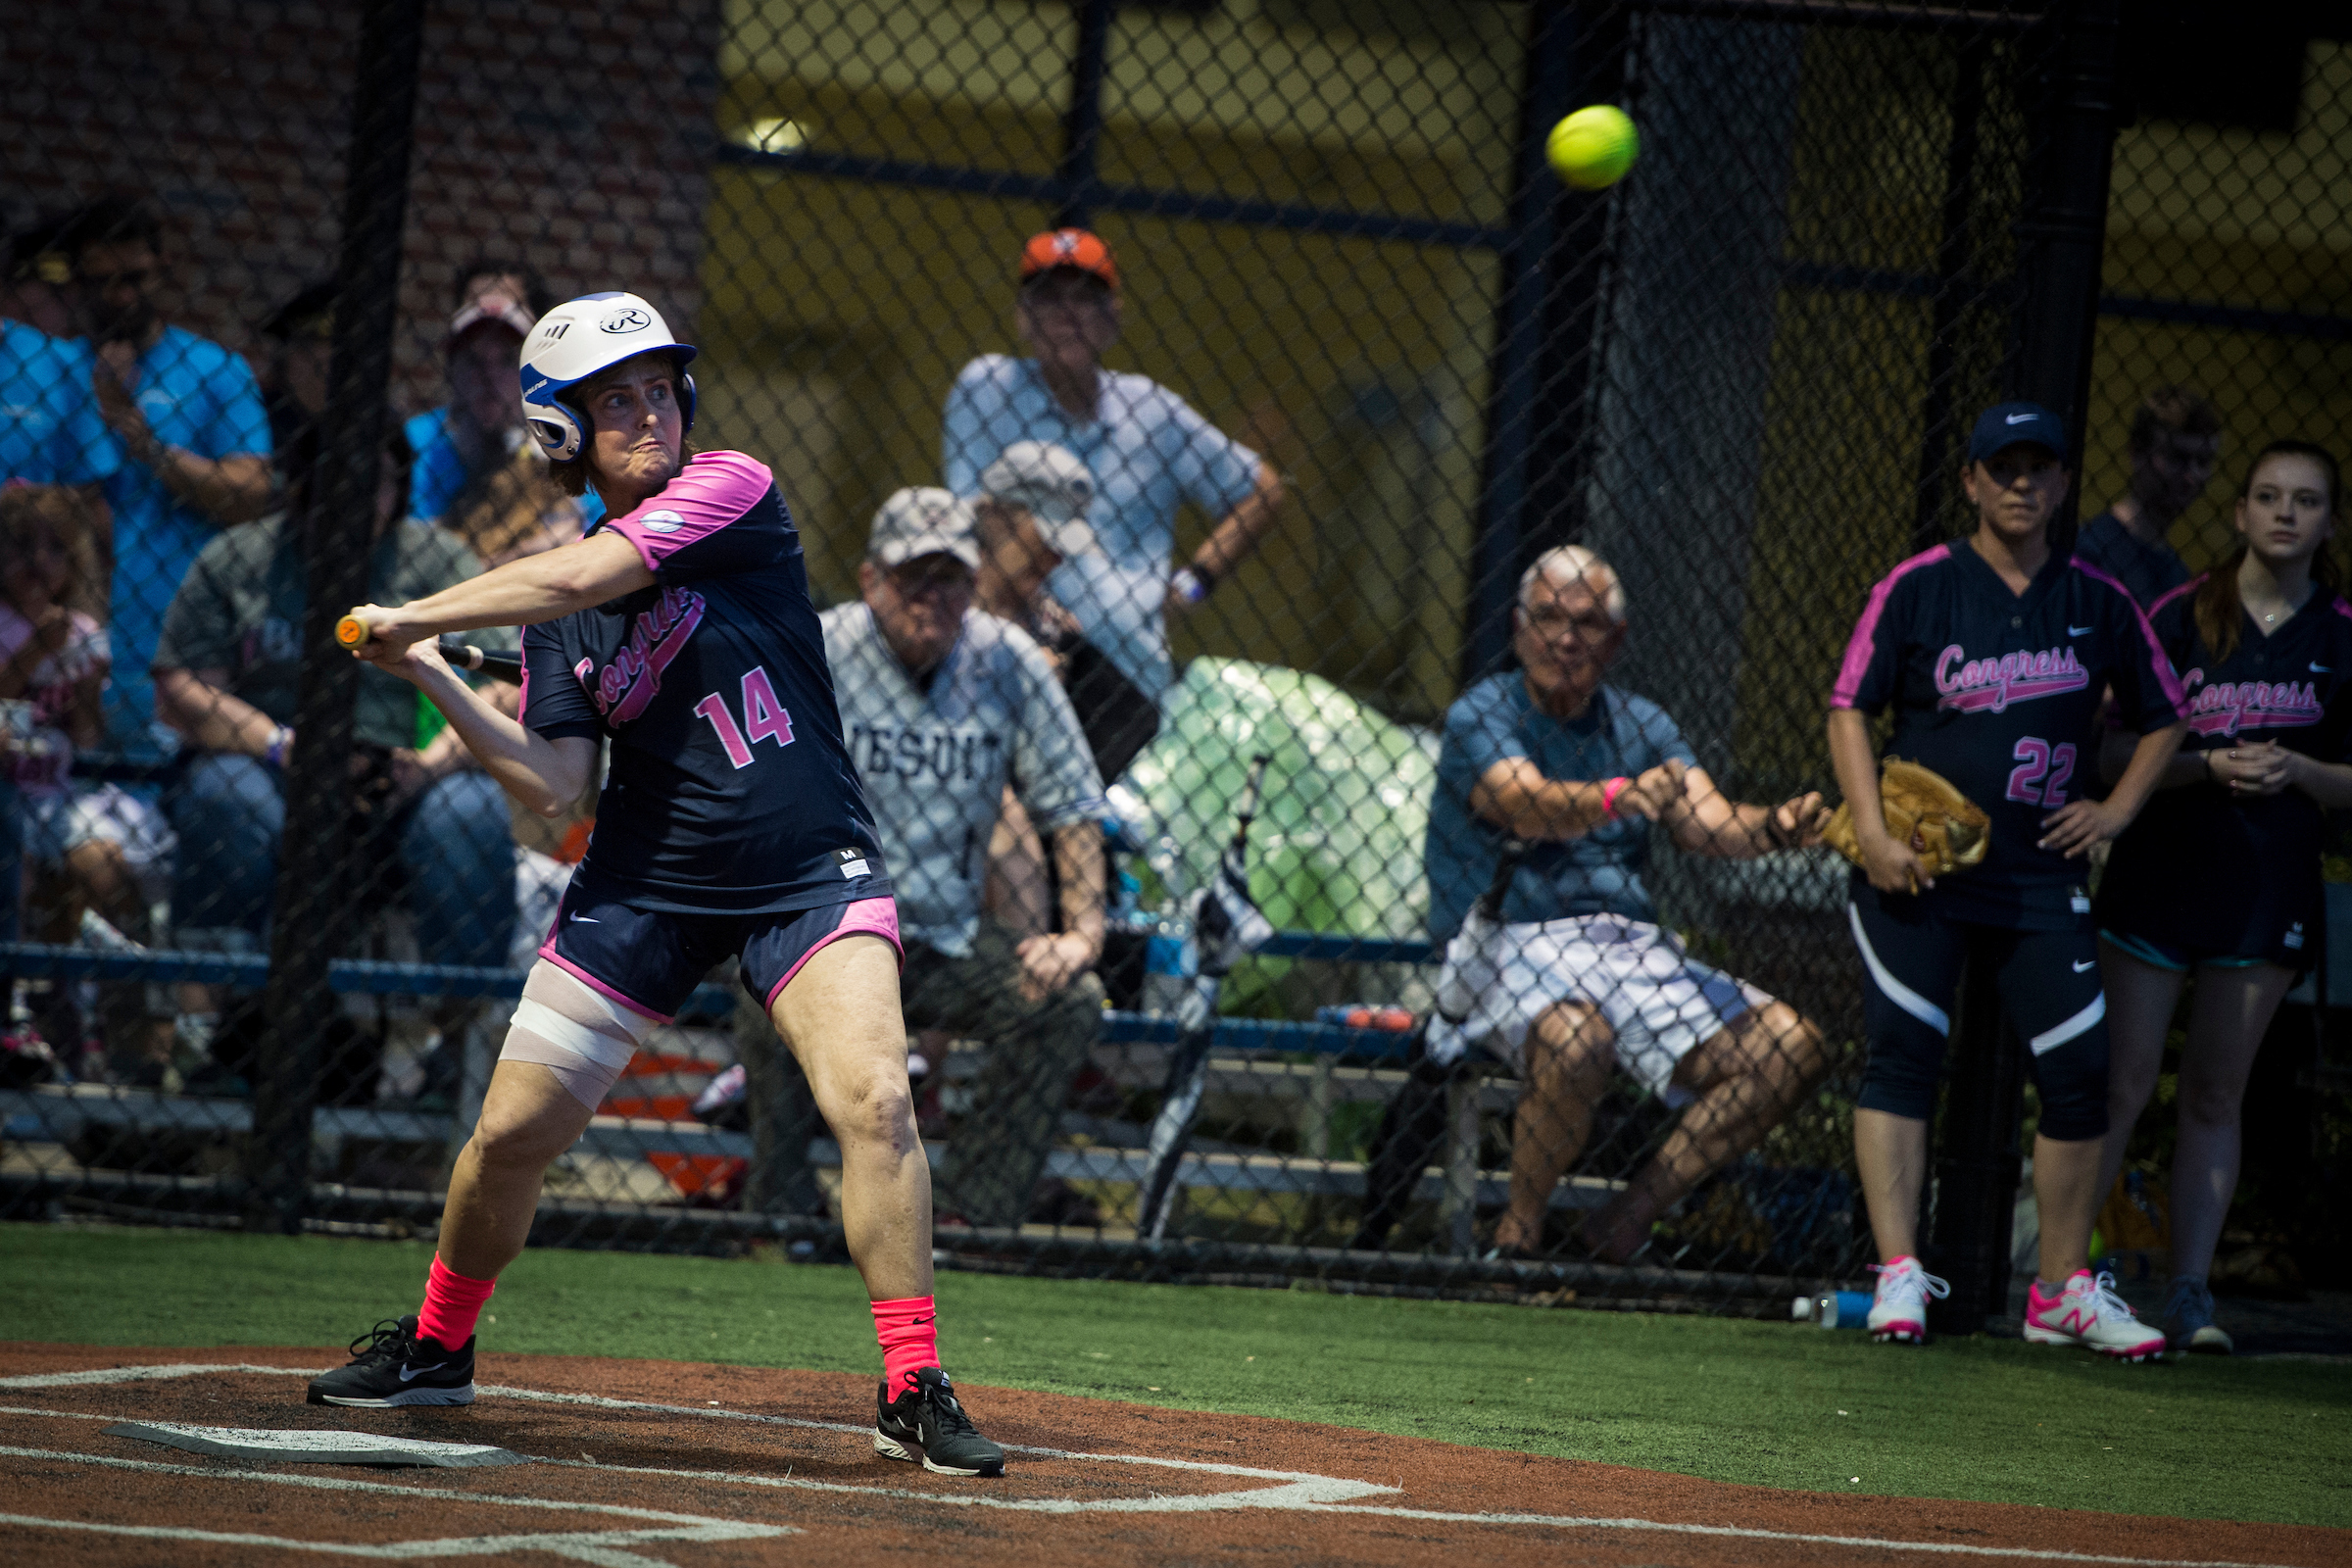 Rep. Kathy Castor, D-Fla., steps up to bat at the The Congressional Women's Softball Game where members of the press take on members of Congress to raise money for breast cancer. This year's game was played at the Watkins Recreation Center in Capitol Hill Wednesday June 20, 2018. (Photo By Sarah Silbiger/CQ Roll Call)